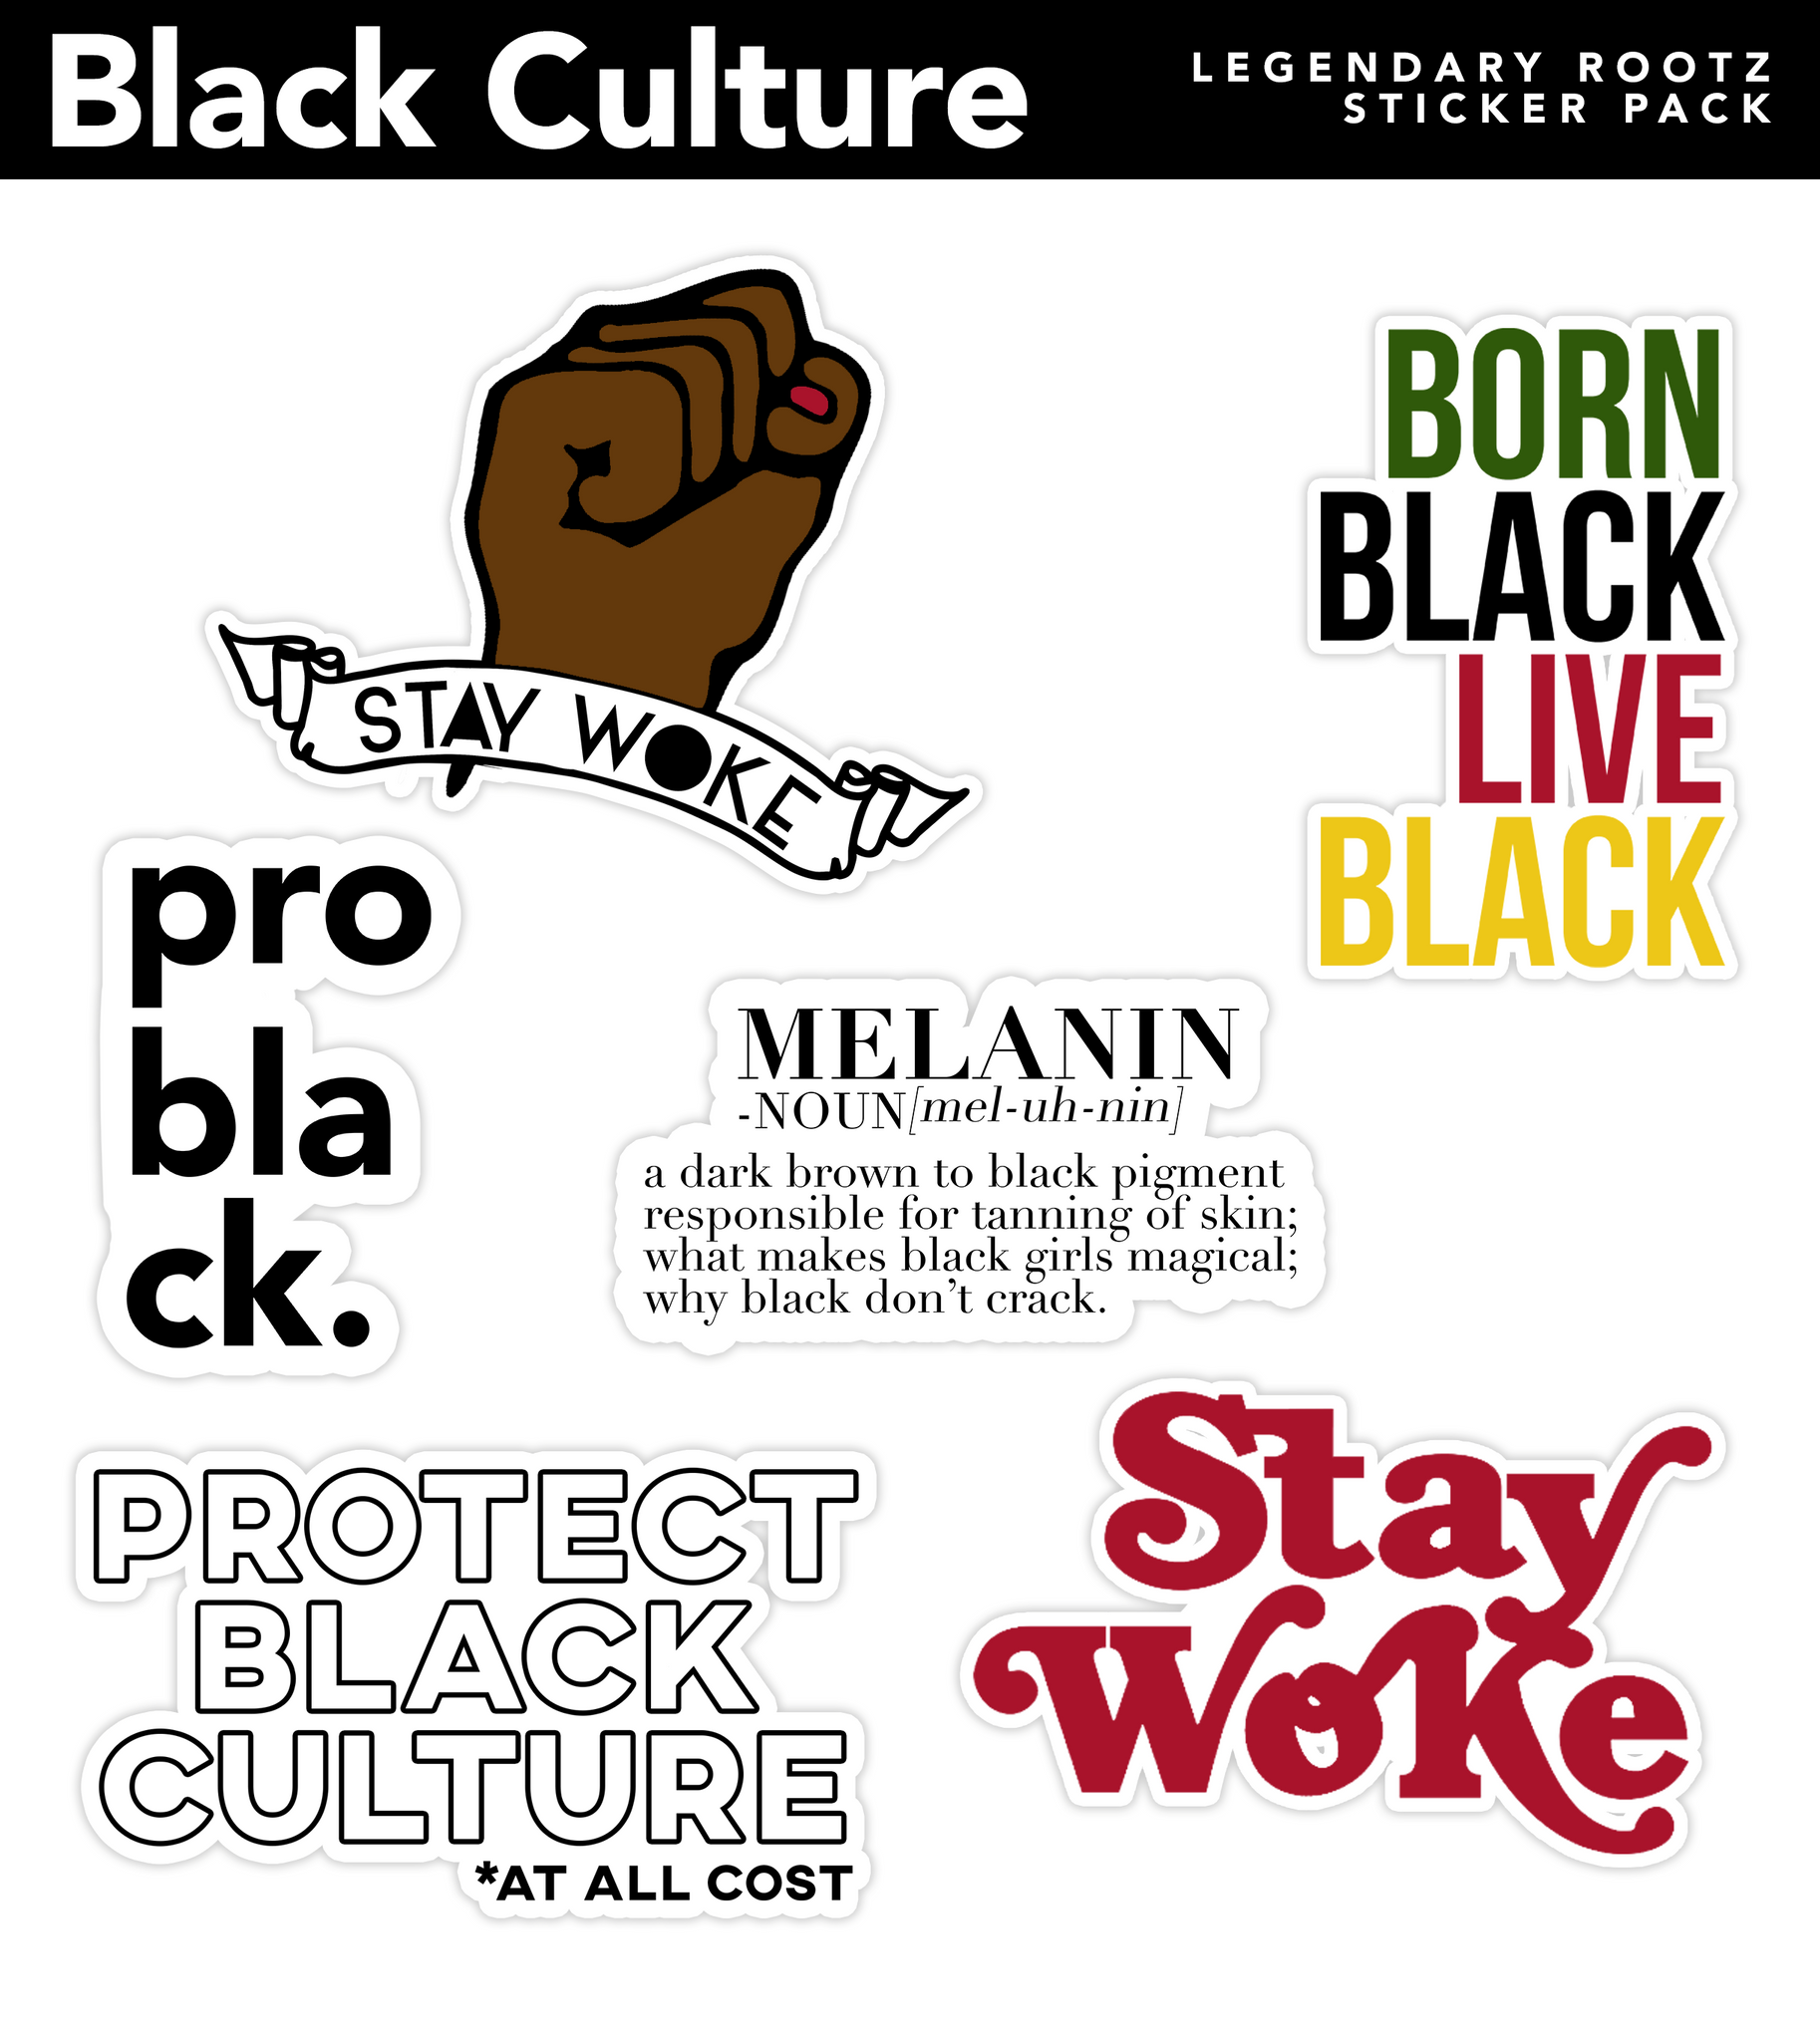 Black Culture | Sticker Pack